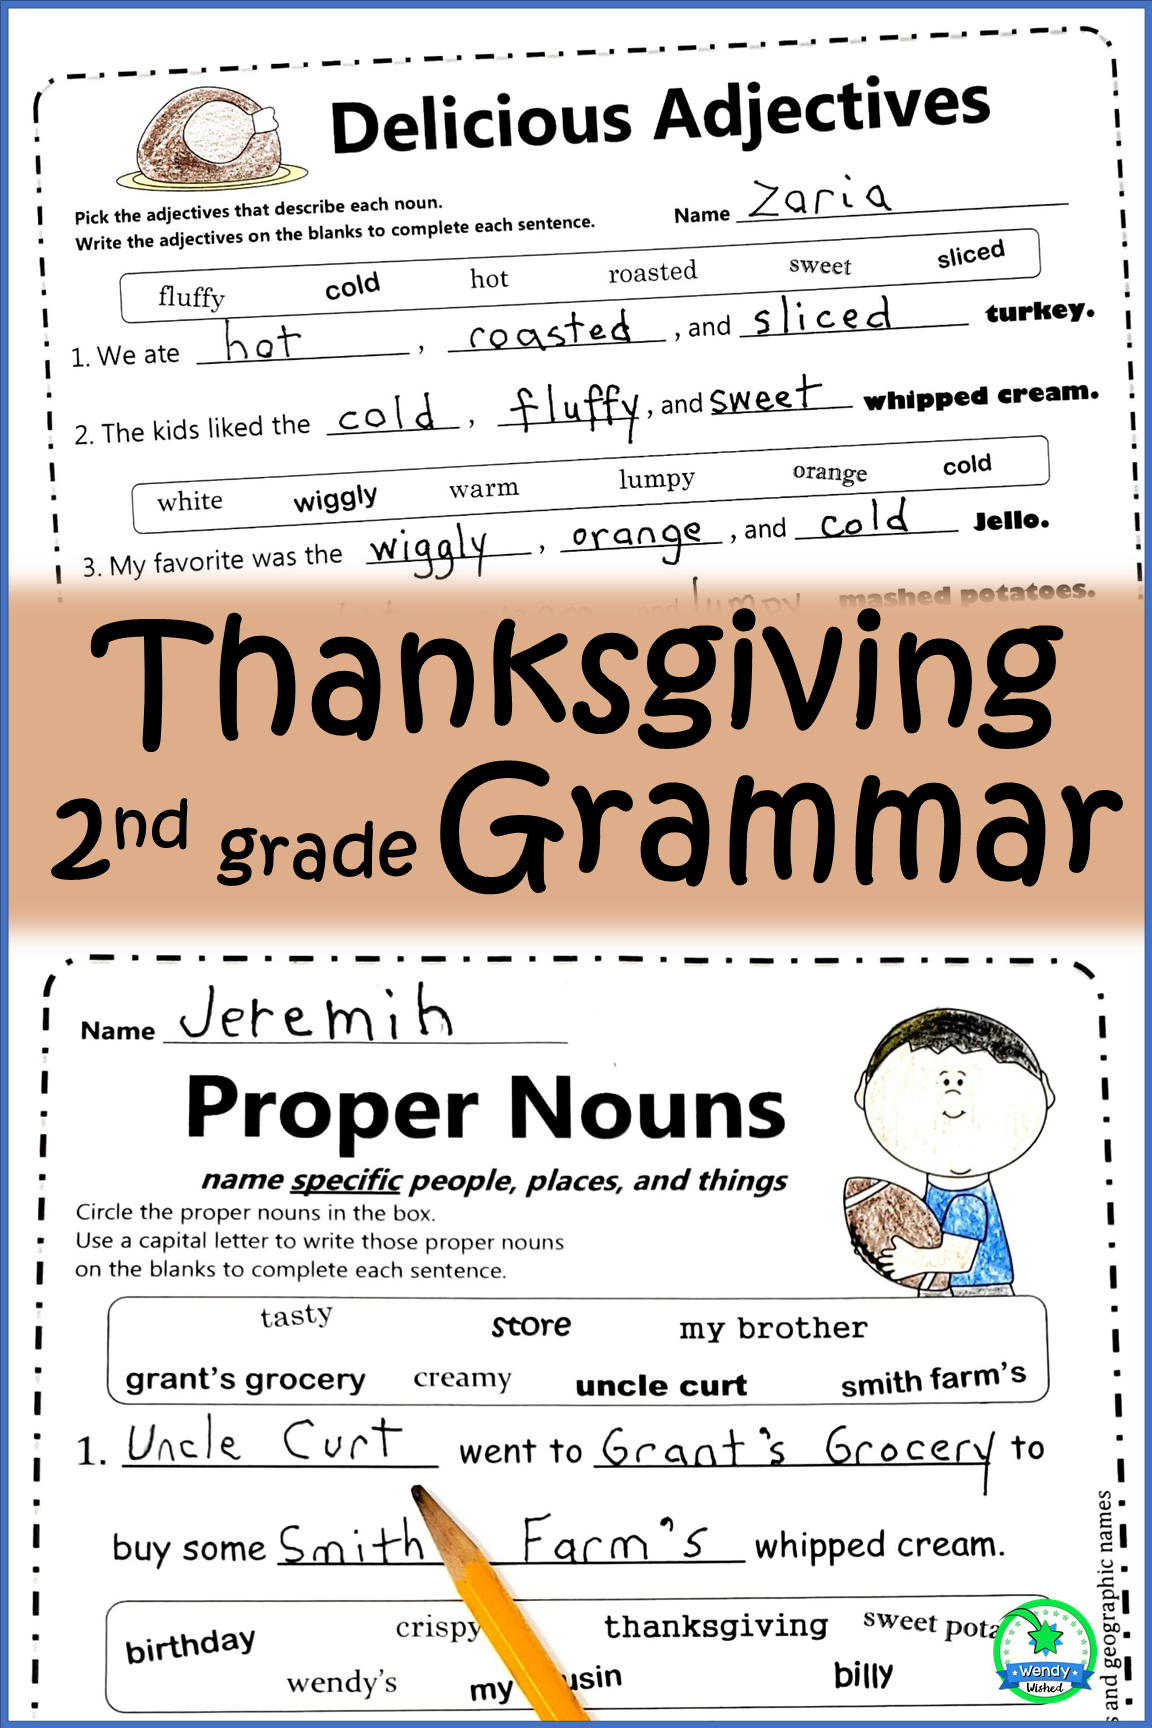 Common Core Second Grade Language Standards Are Covered